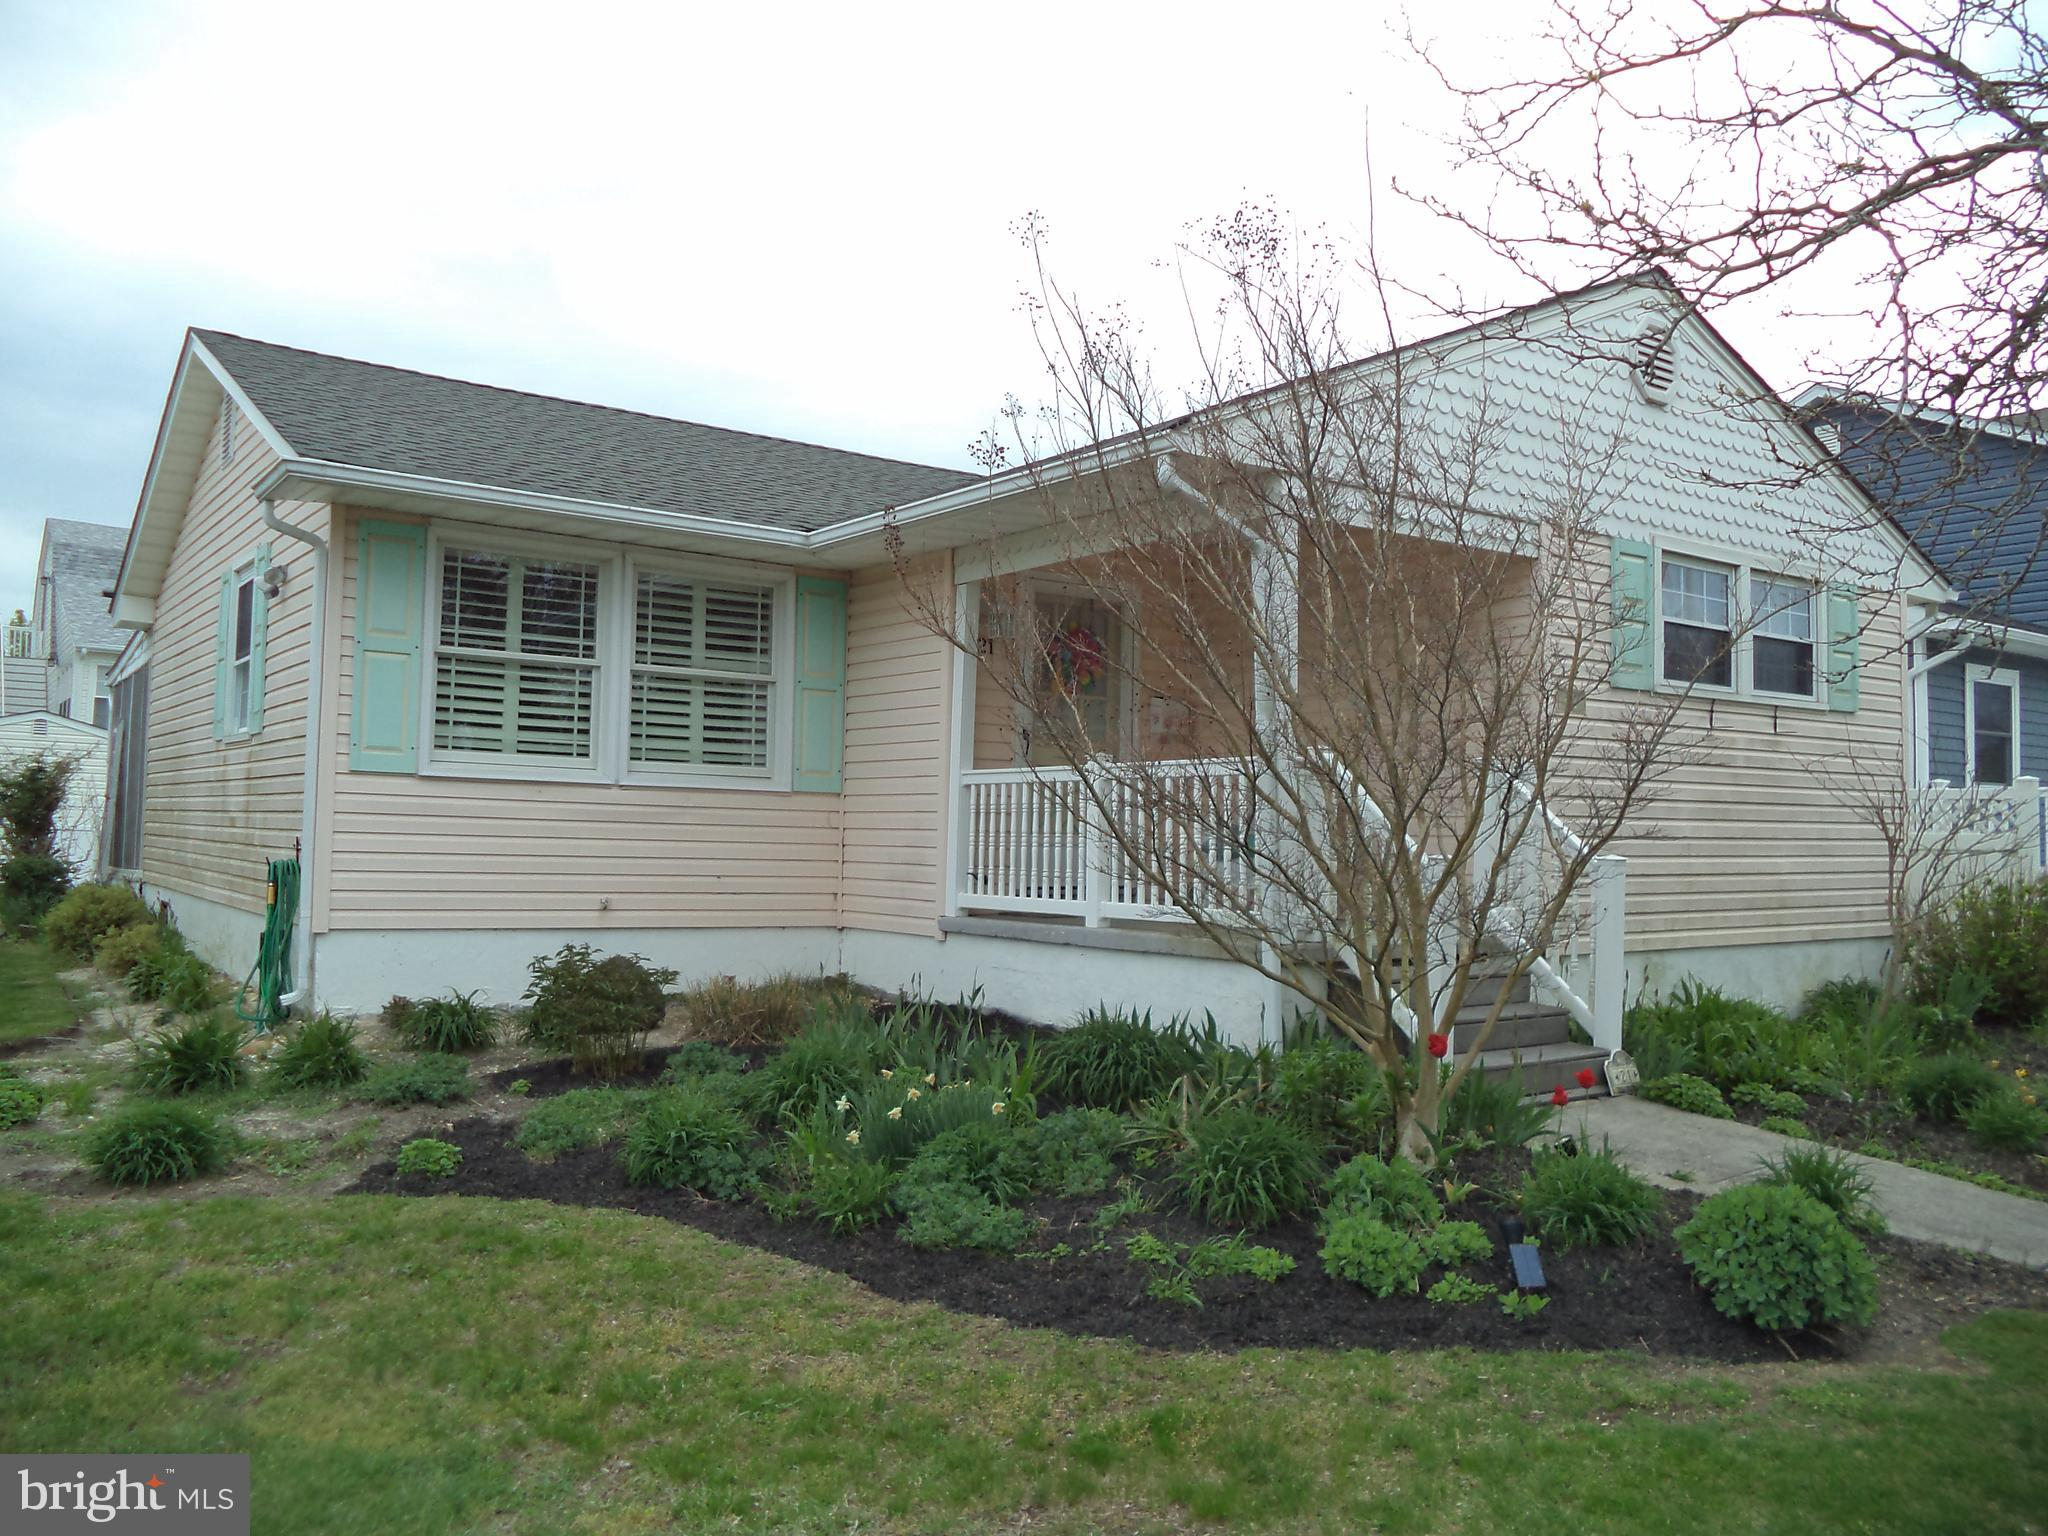 21 W 55TH STREET, OCEAN CITY, NJ 08226